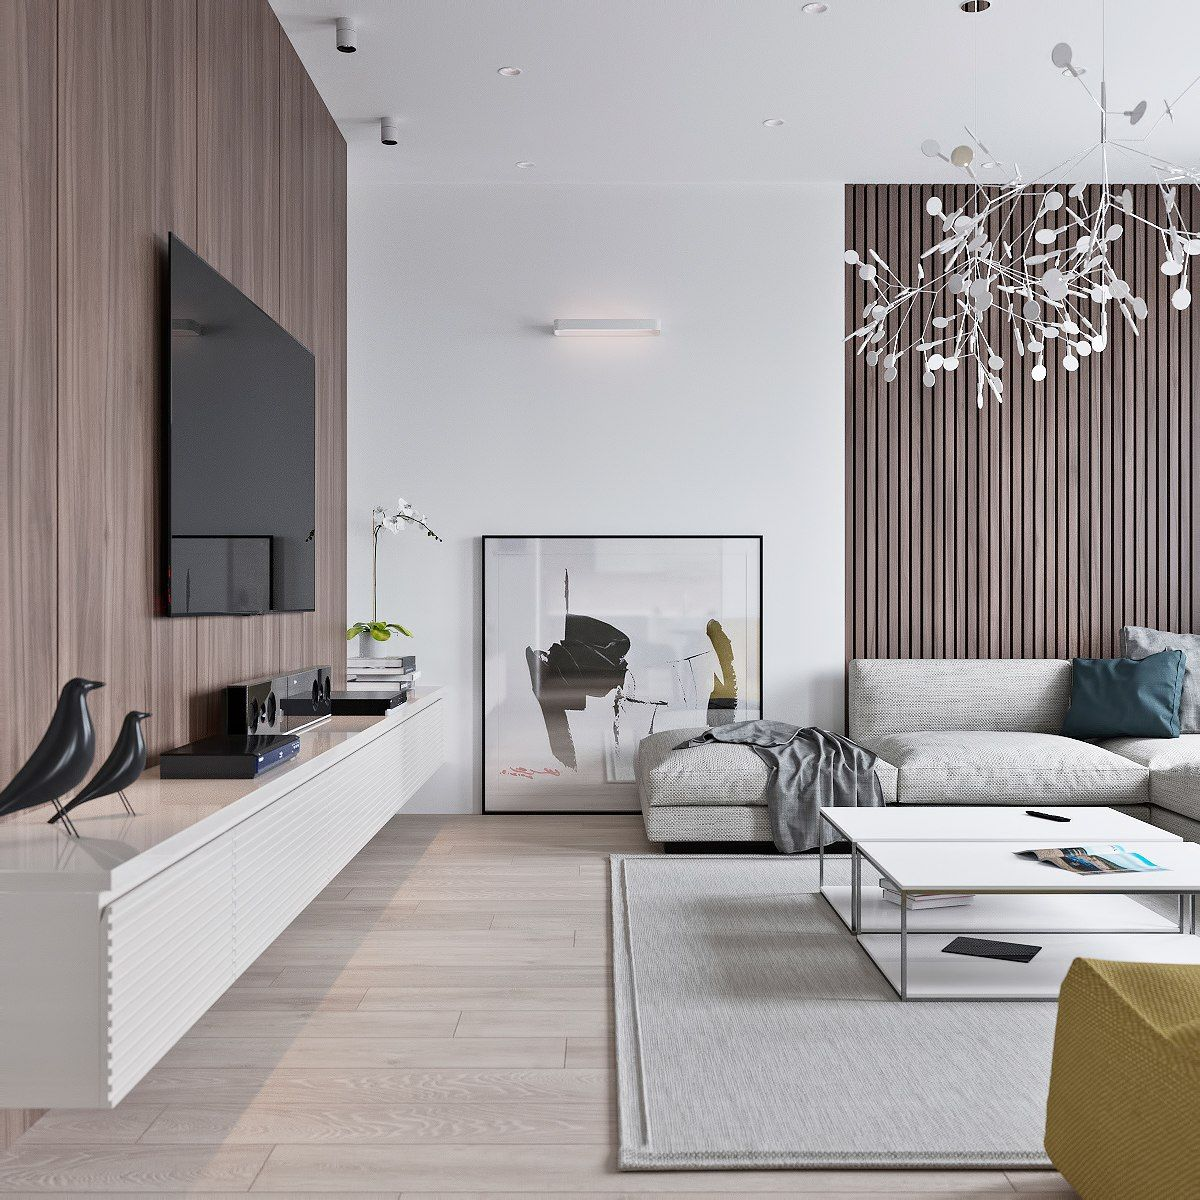 3 Light Interiors With Creative Pops Of Color Living Room